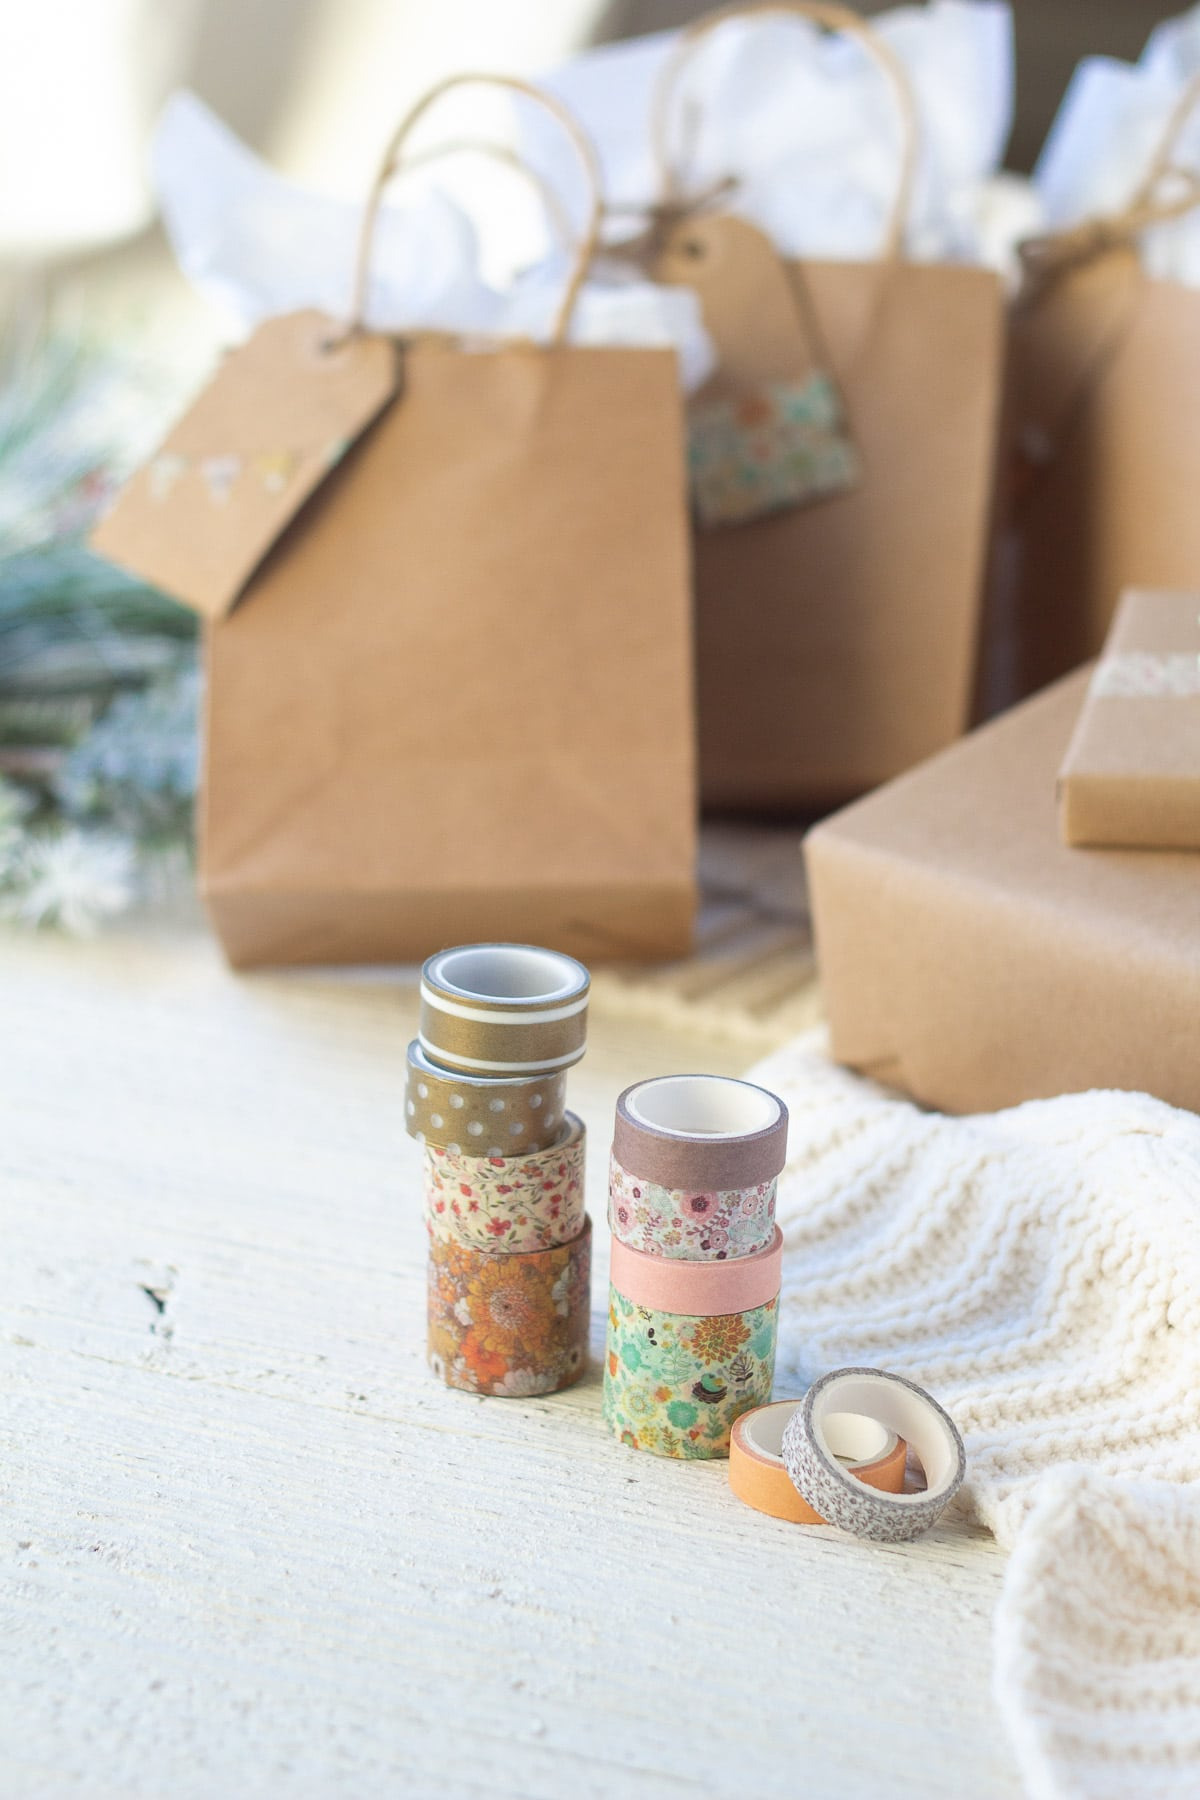 A stack of washi tape rolls in front of wrapped gifts.